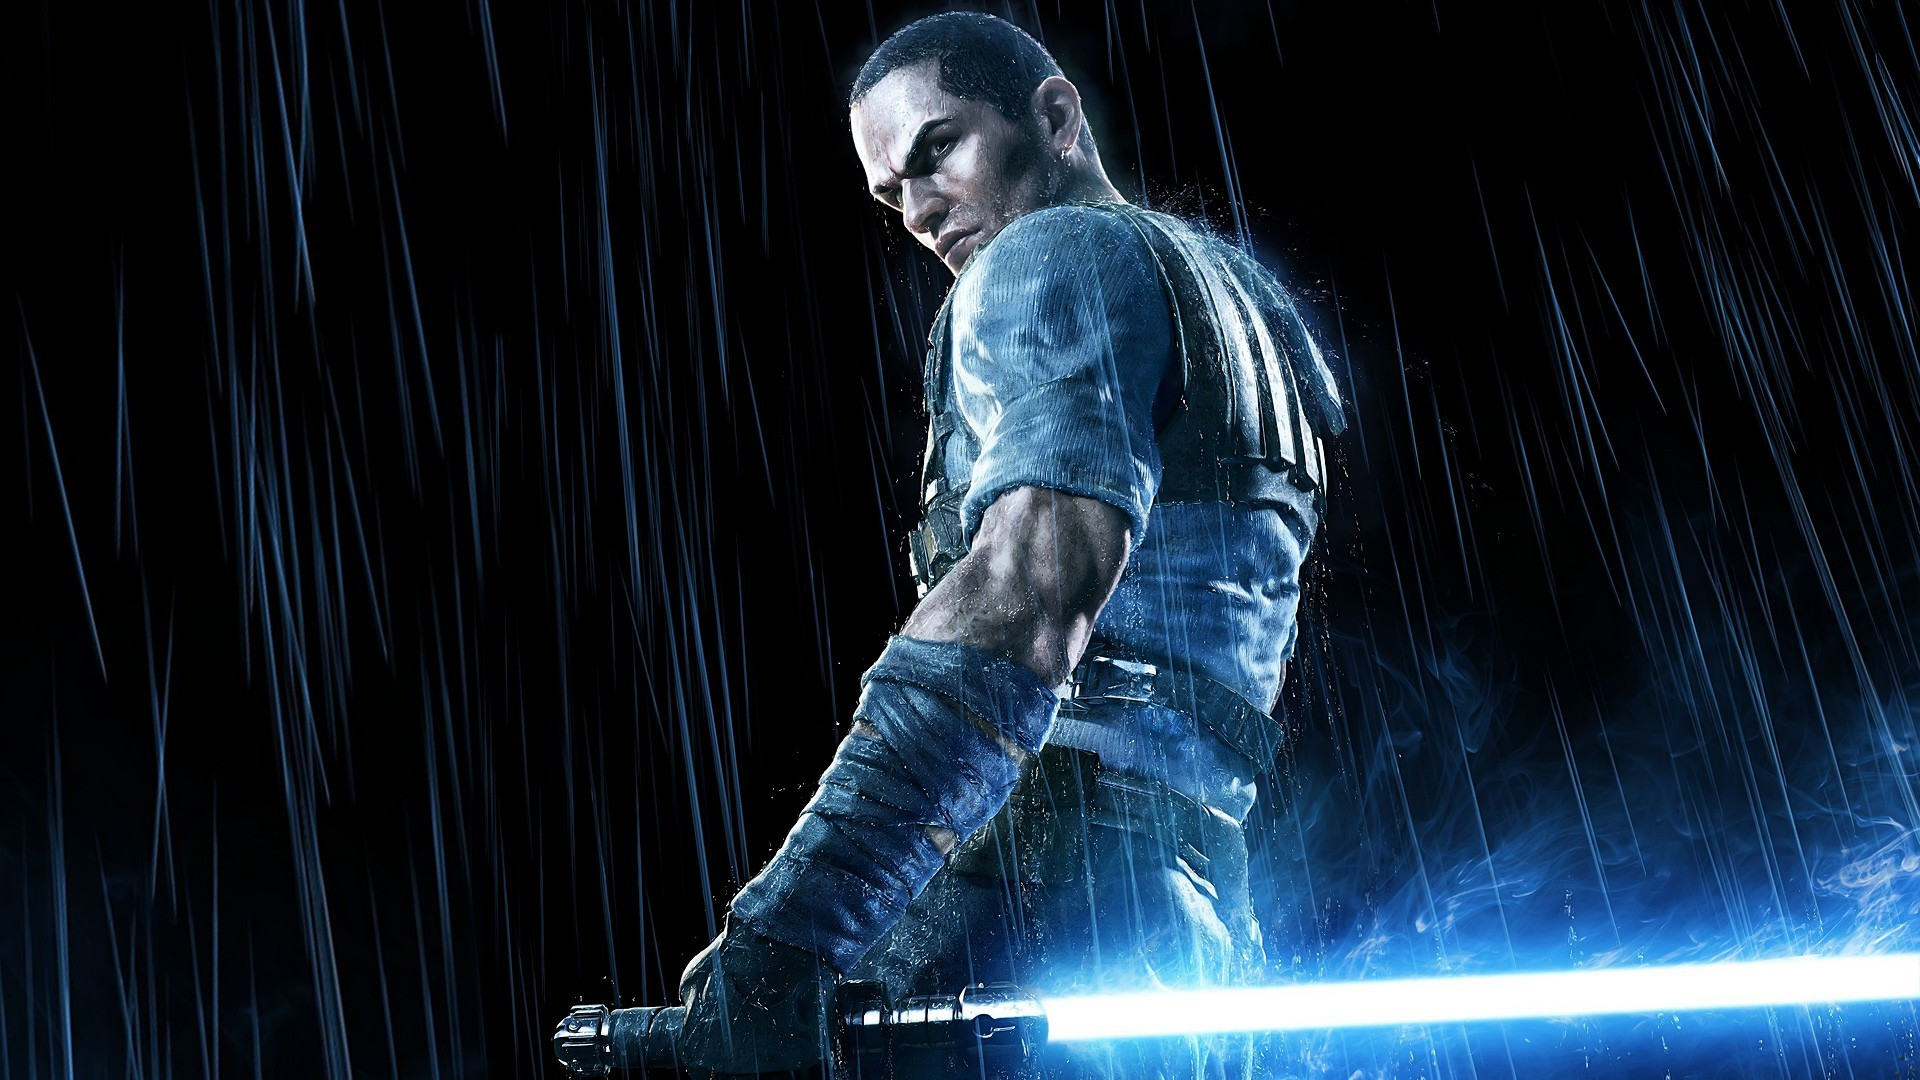 star wars video games HD Wallpaper